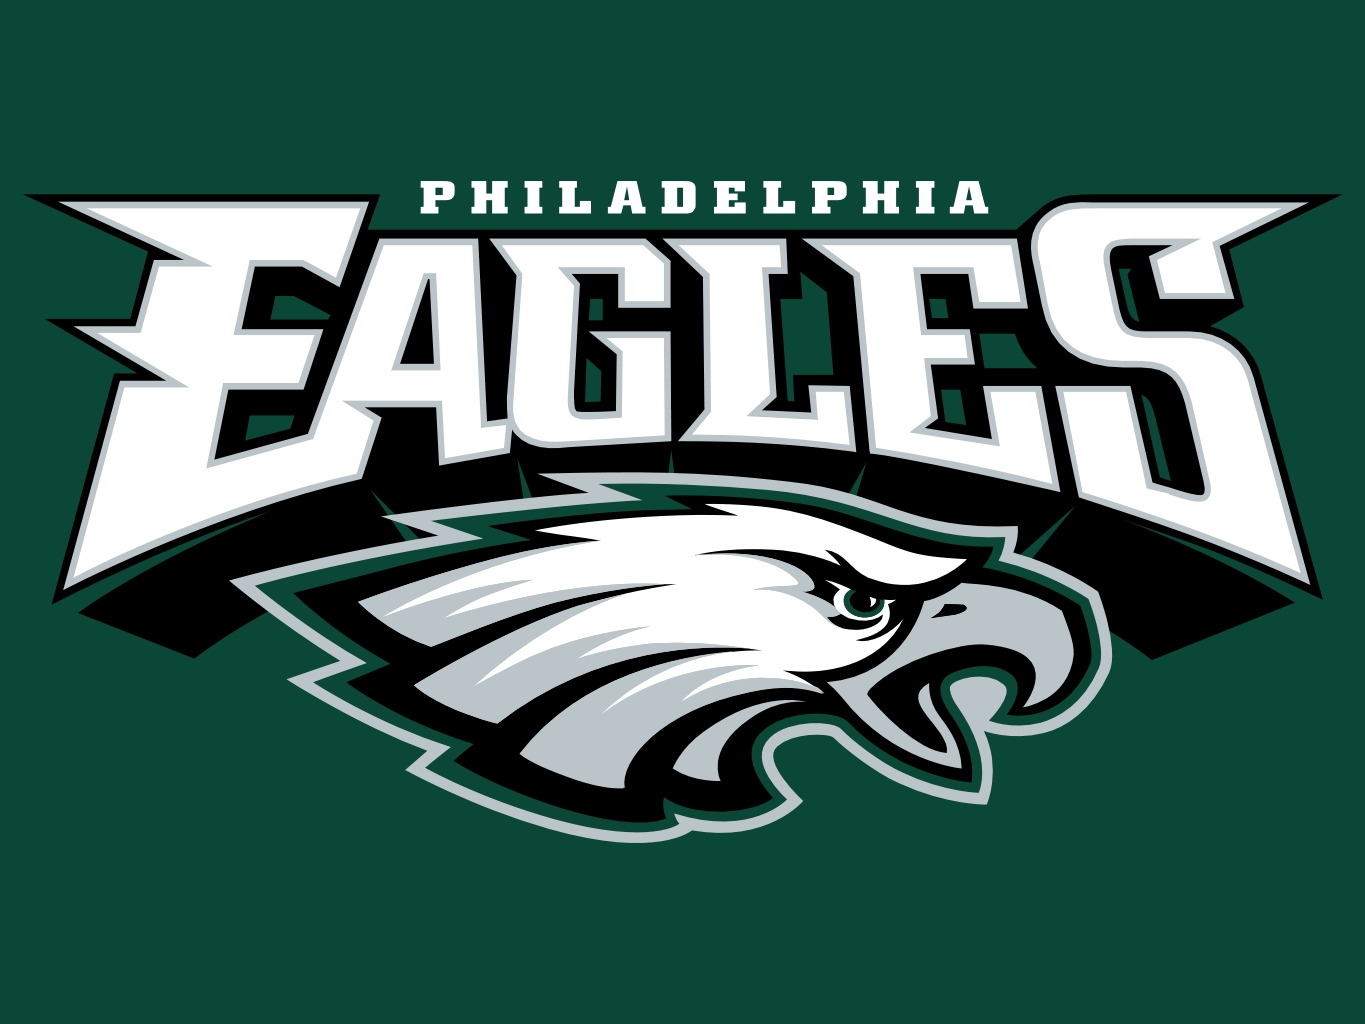 Philadelphia eagles background clipart   Clip Art Library 1365x1024